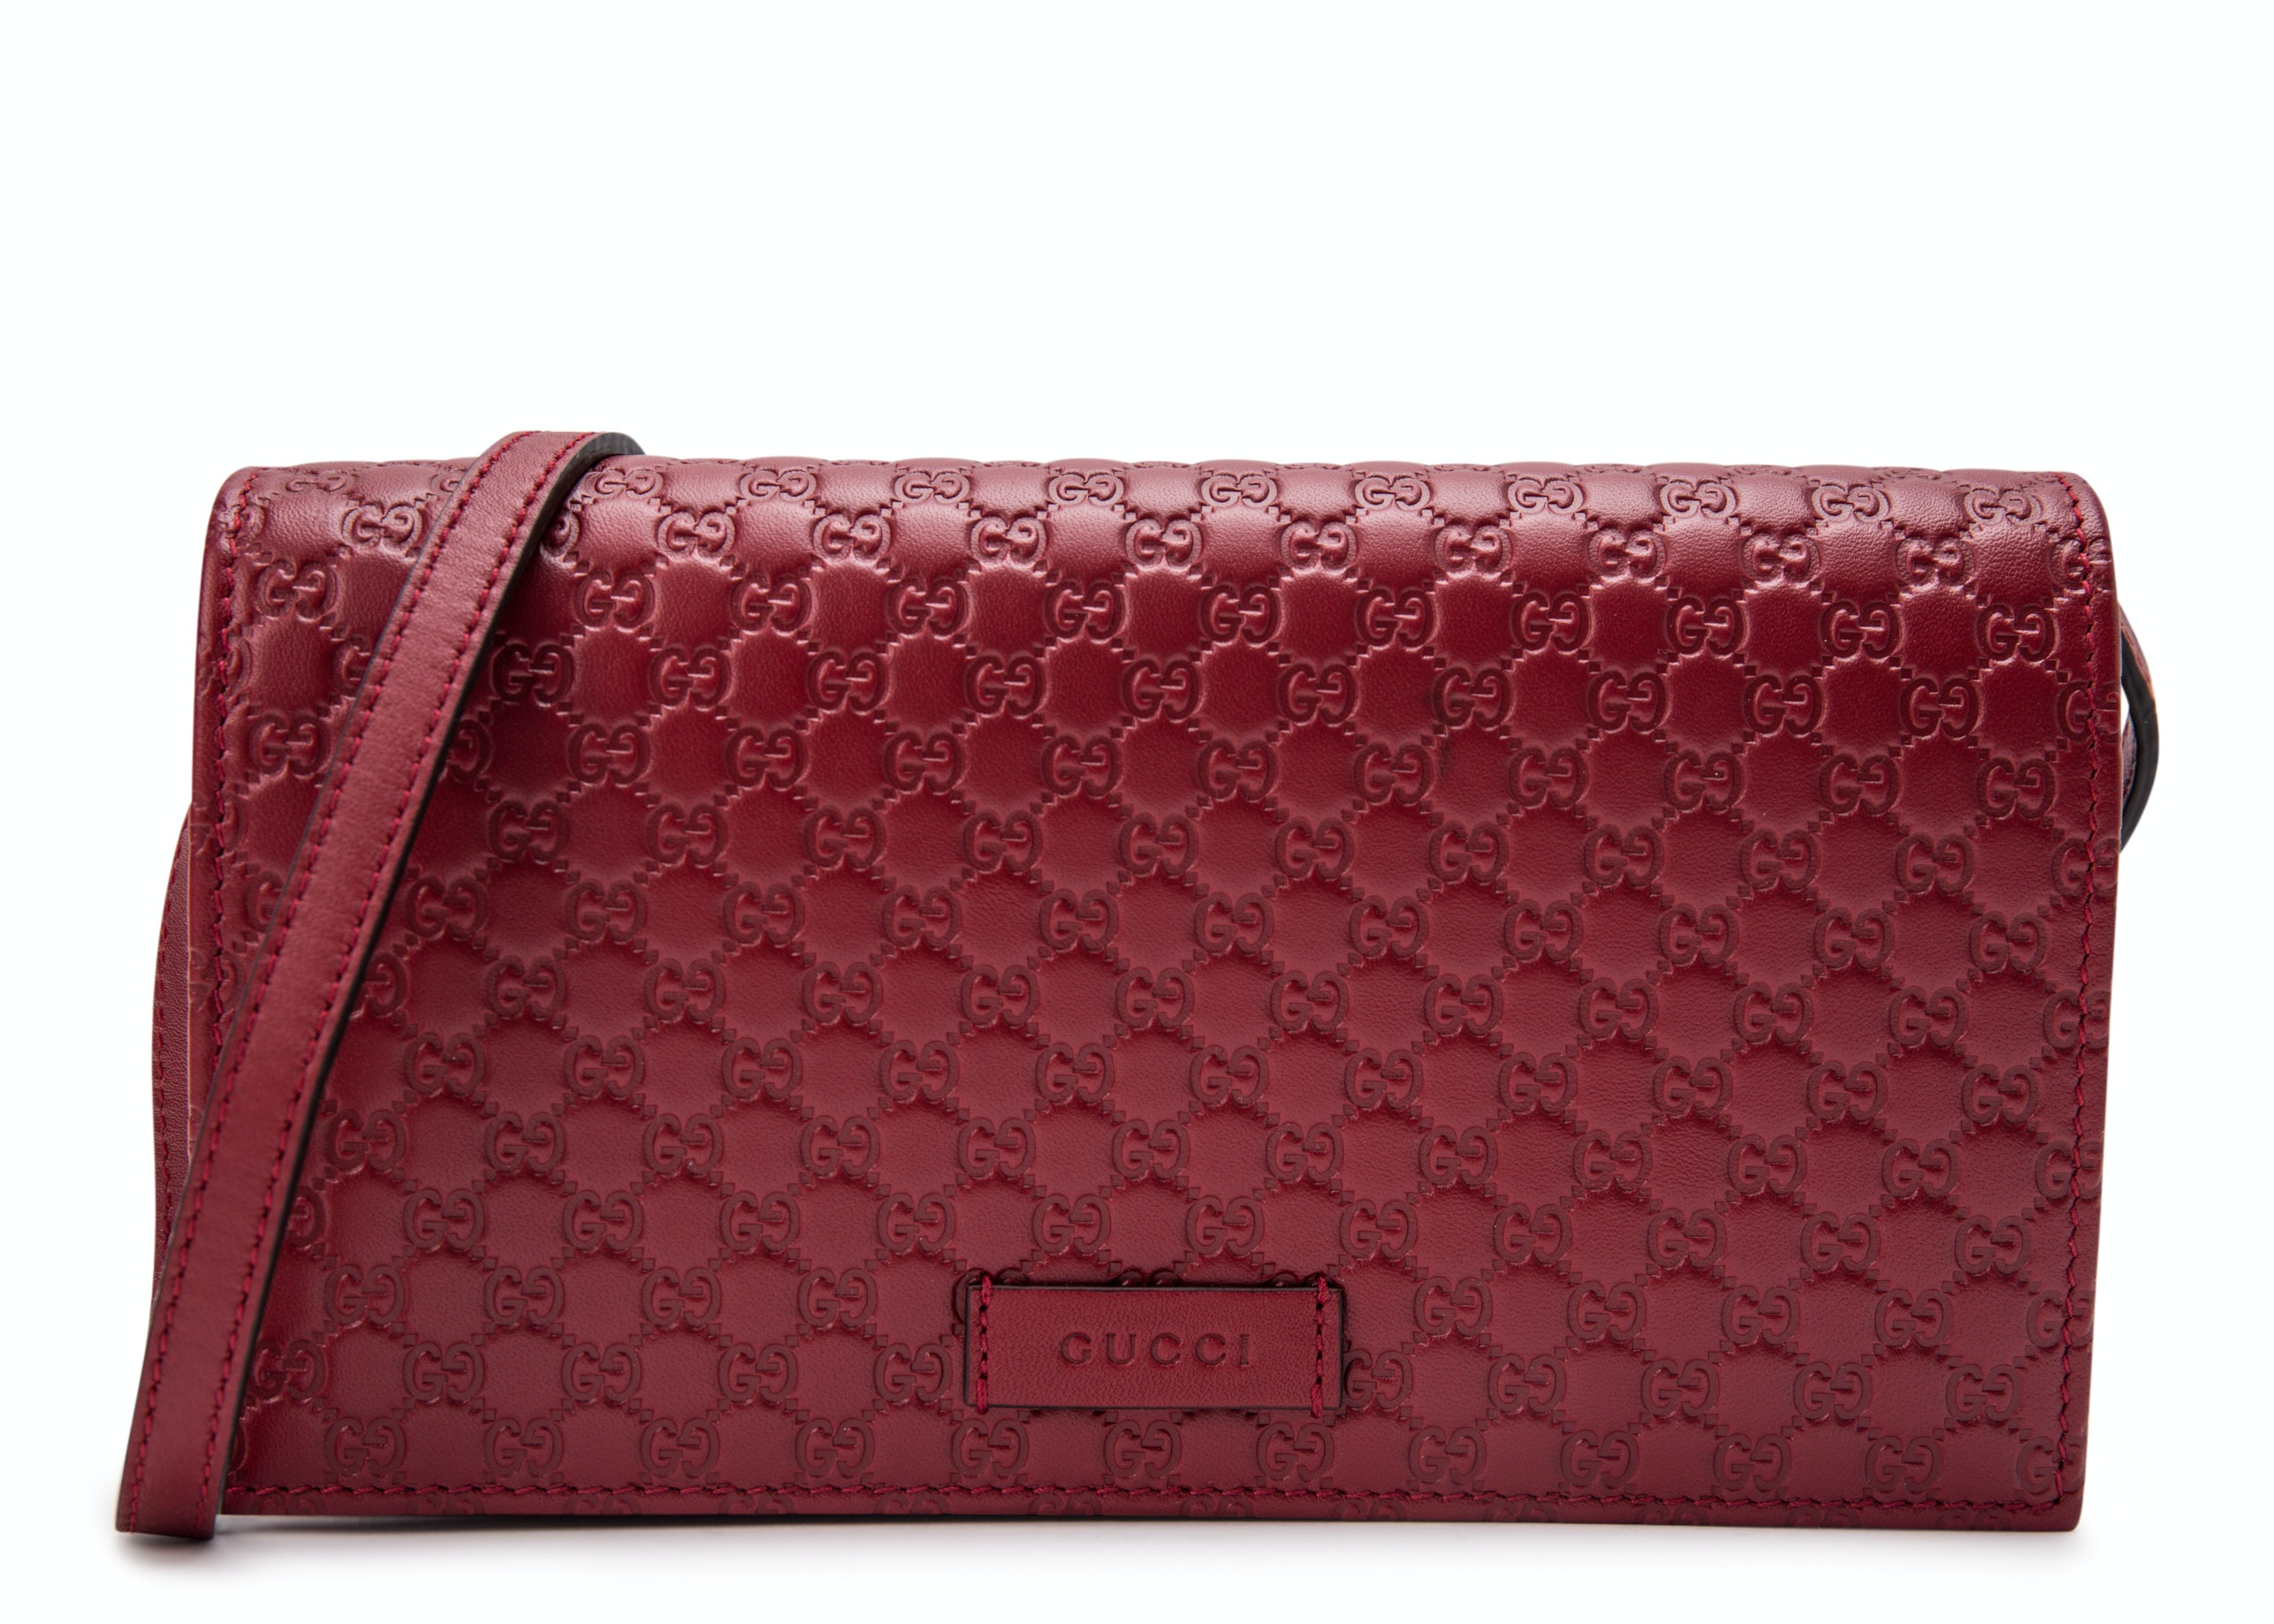 Gucci Wallet Crossbody MicroGuccissima Red